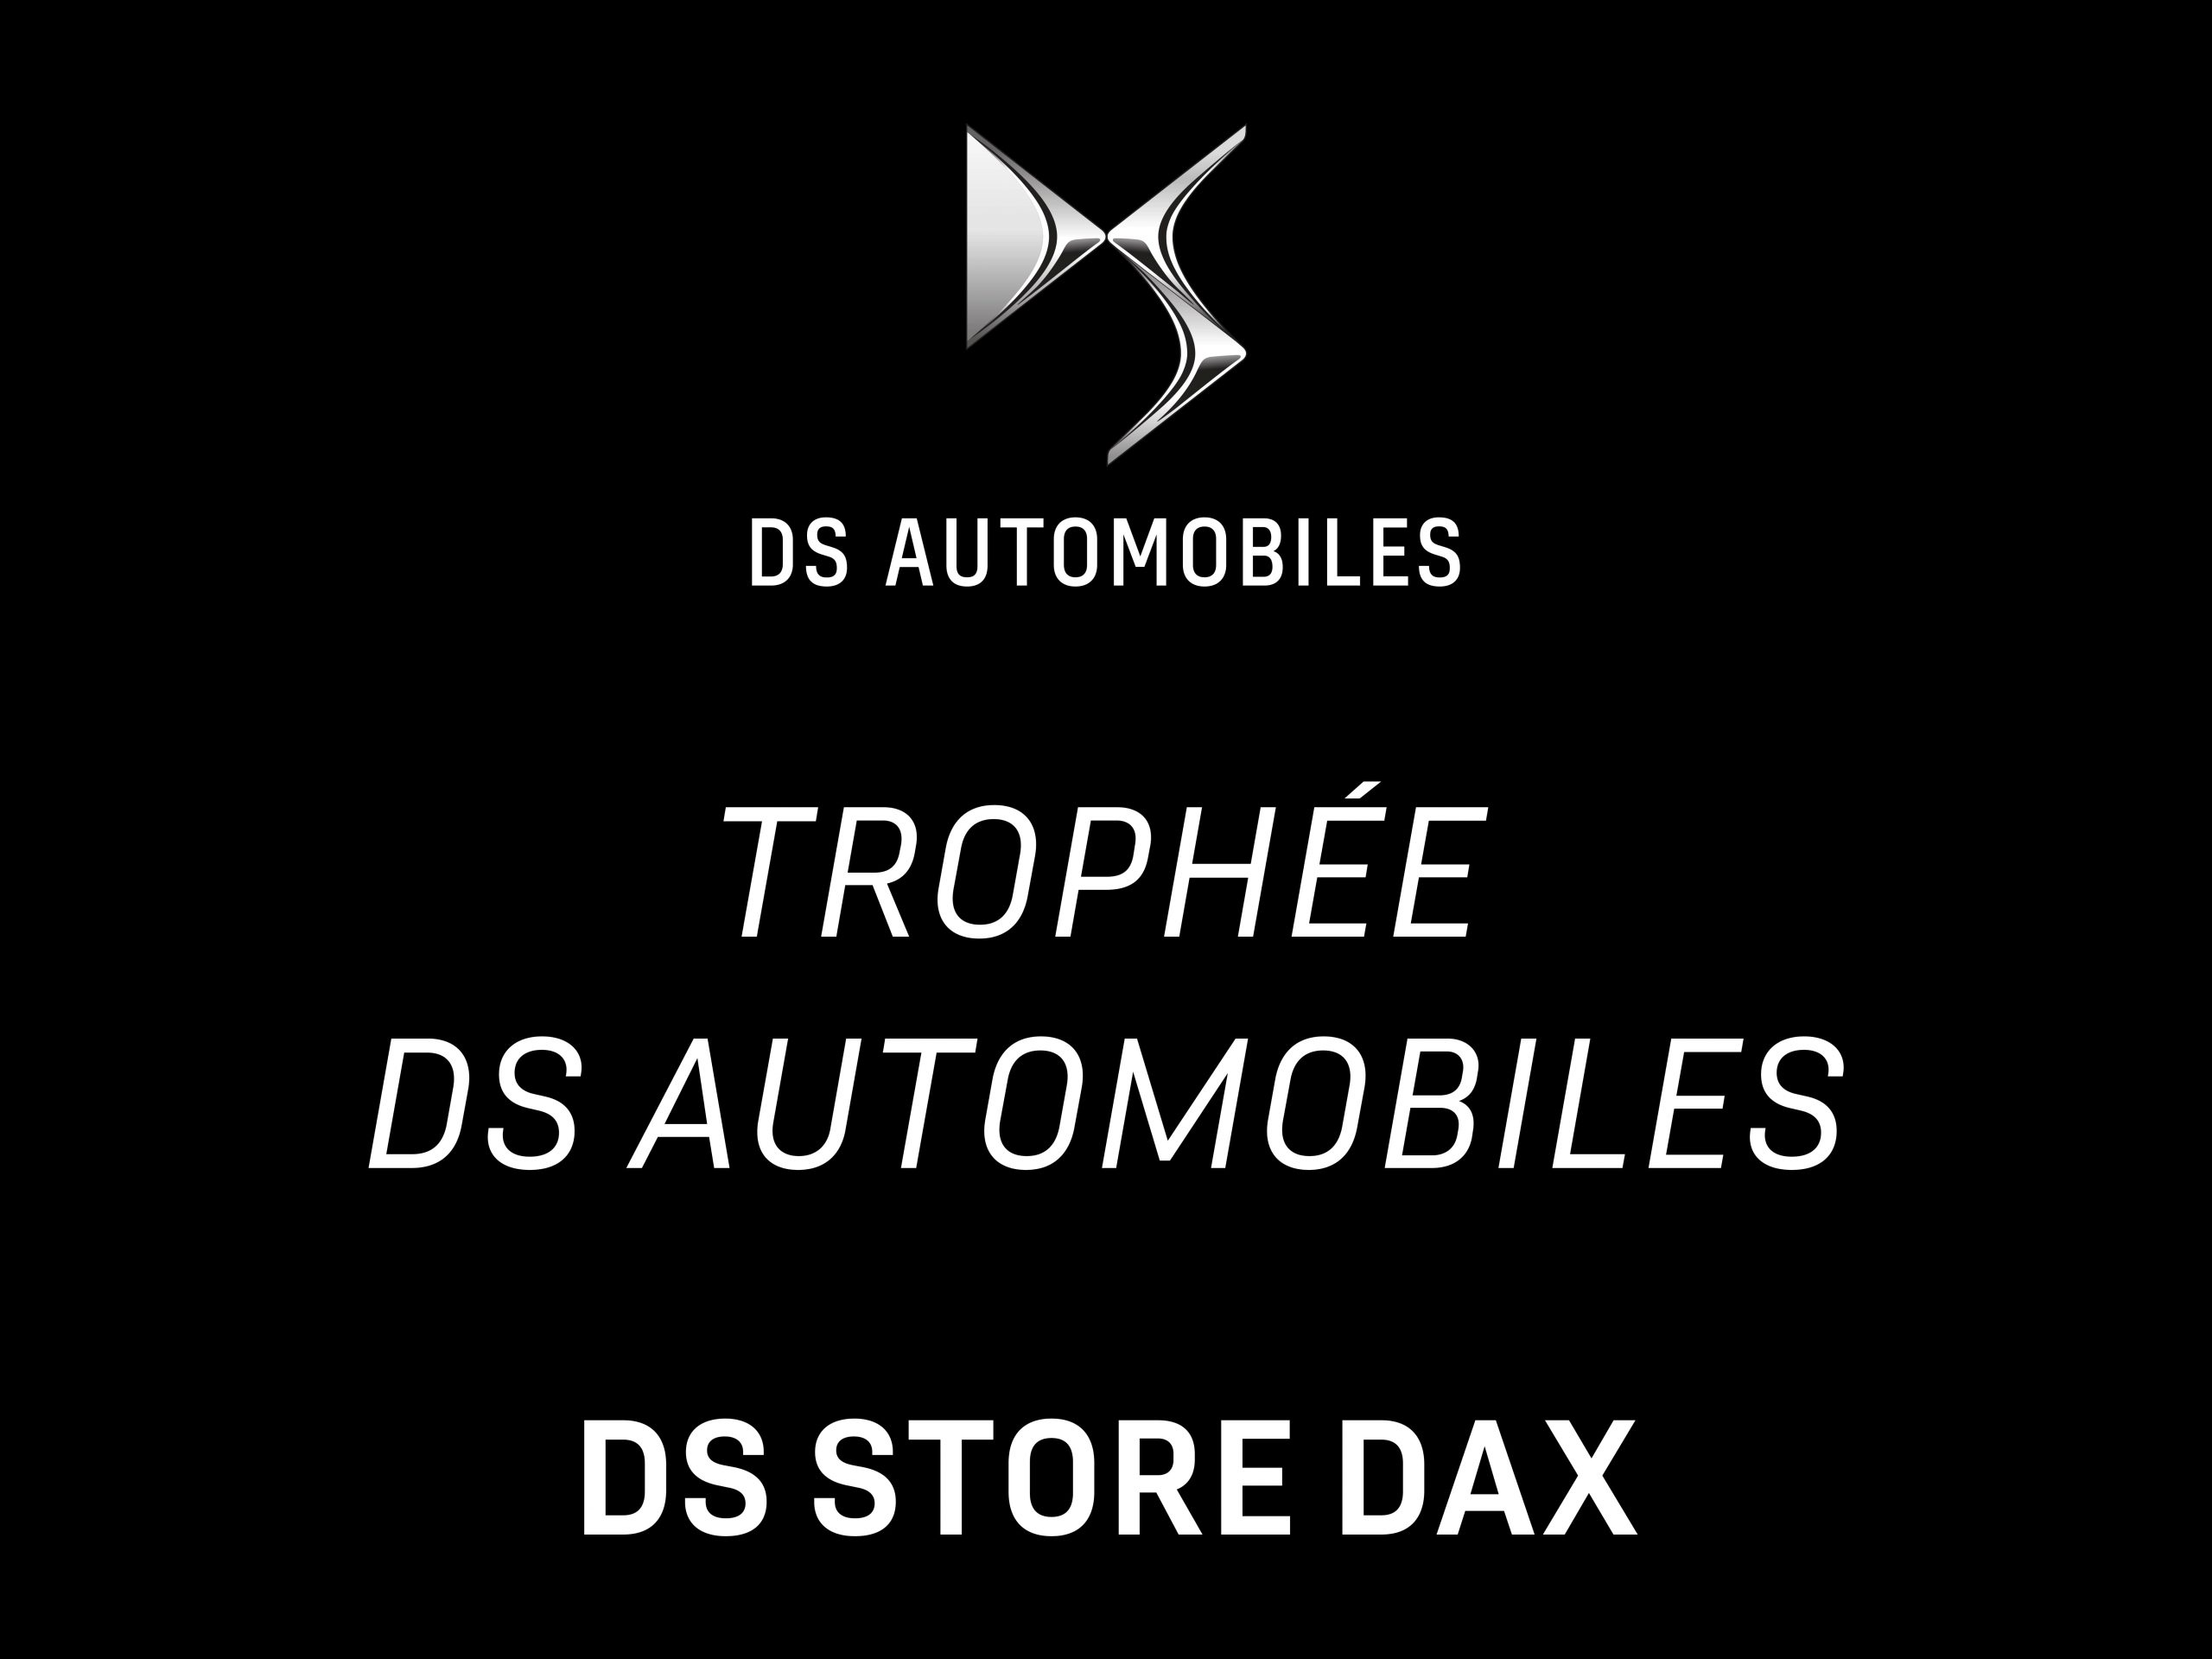 DS STORE DAX